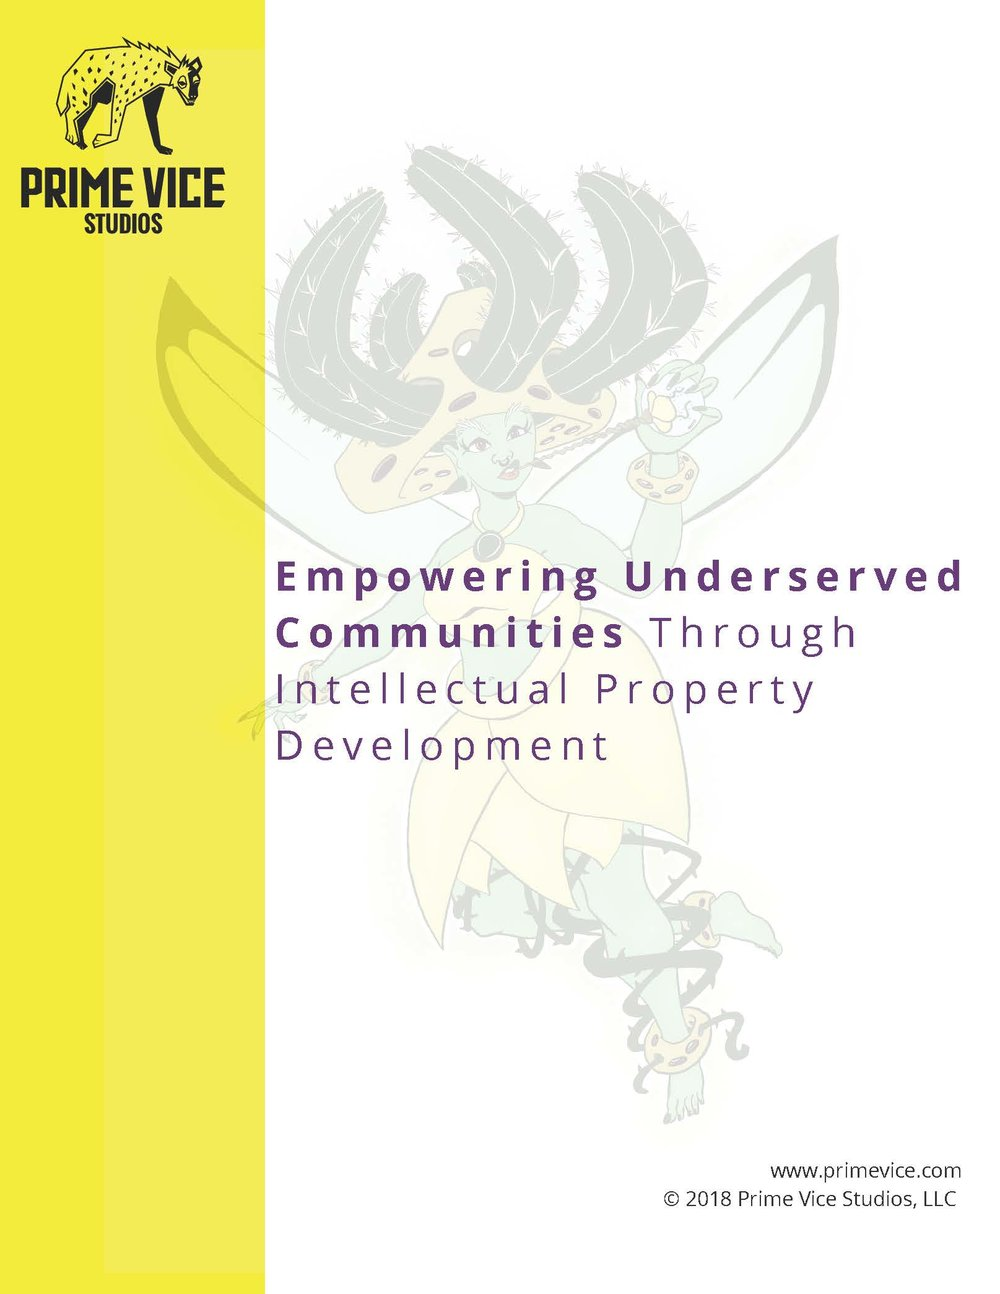 Empowering Underserved Communities Through Intellectual Property Development - This white paper was written for Prime Vice Studios, LLC. I discusses how intellectual property development creates wealth and can help economically disadvantaged communities prosper.